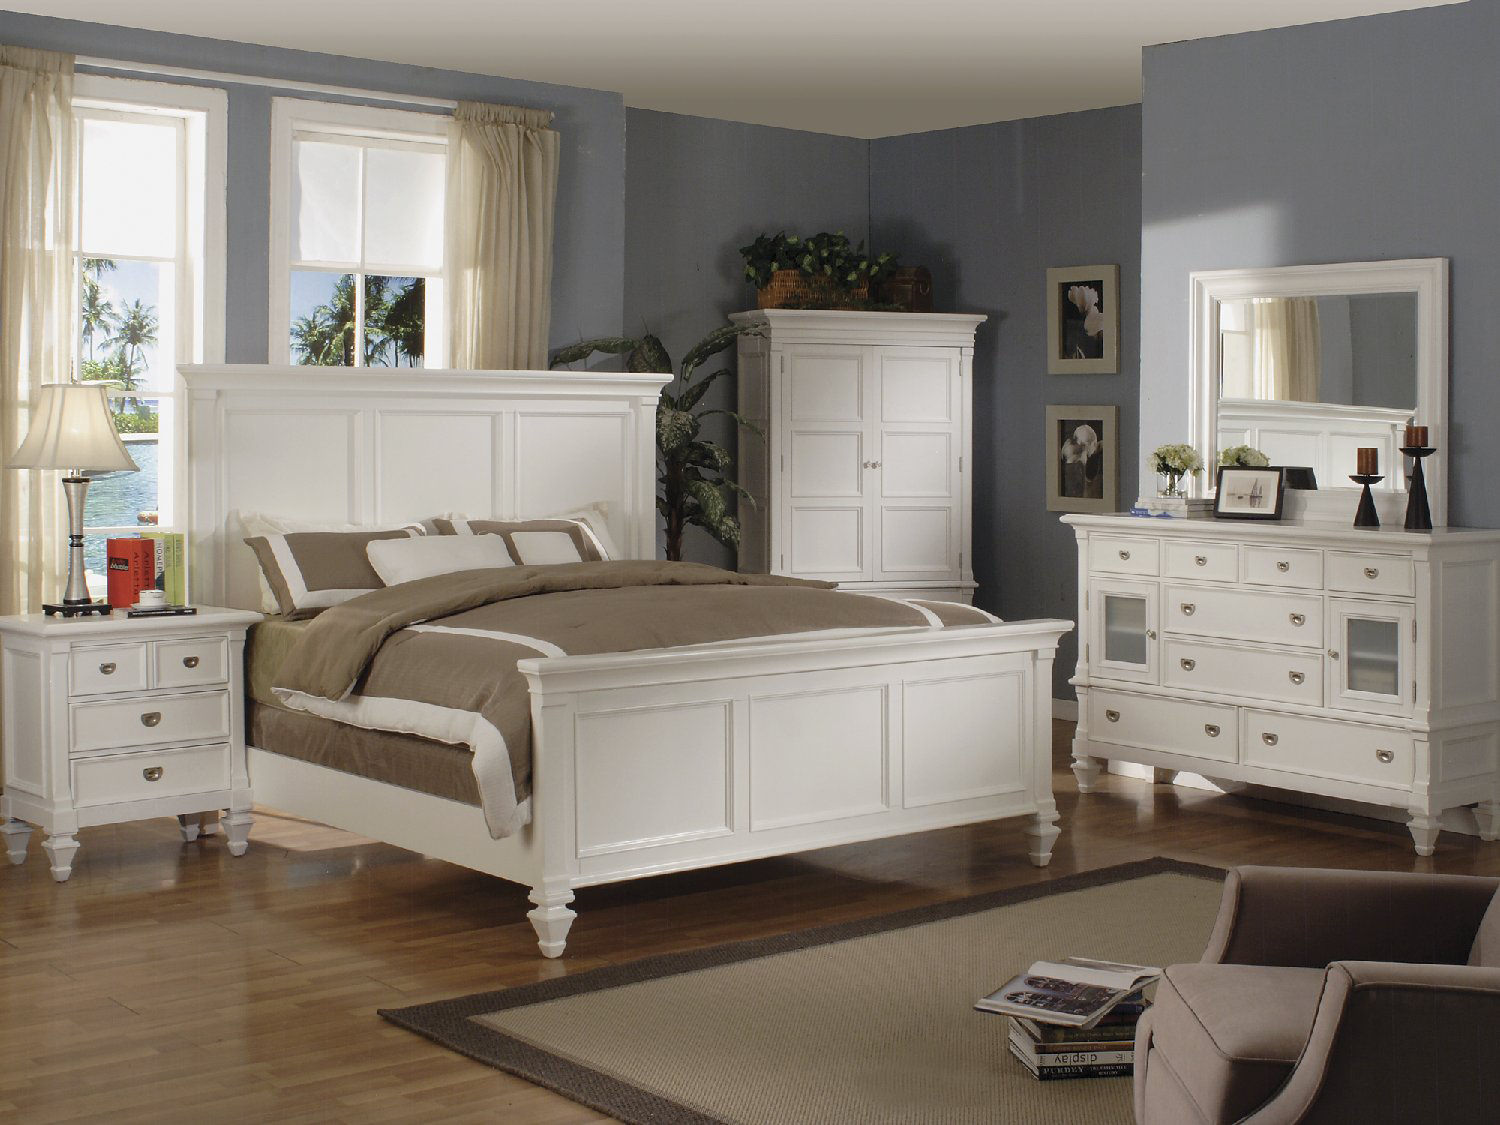 Summer Breeze White Panel Bedroom Suite By Thomas Cole Designs Hom Furniture